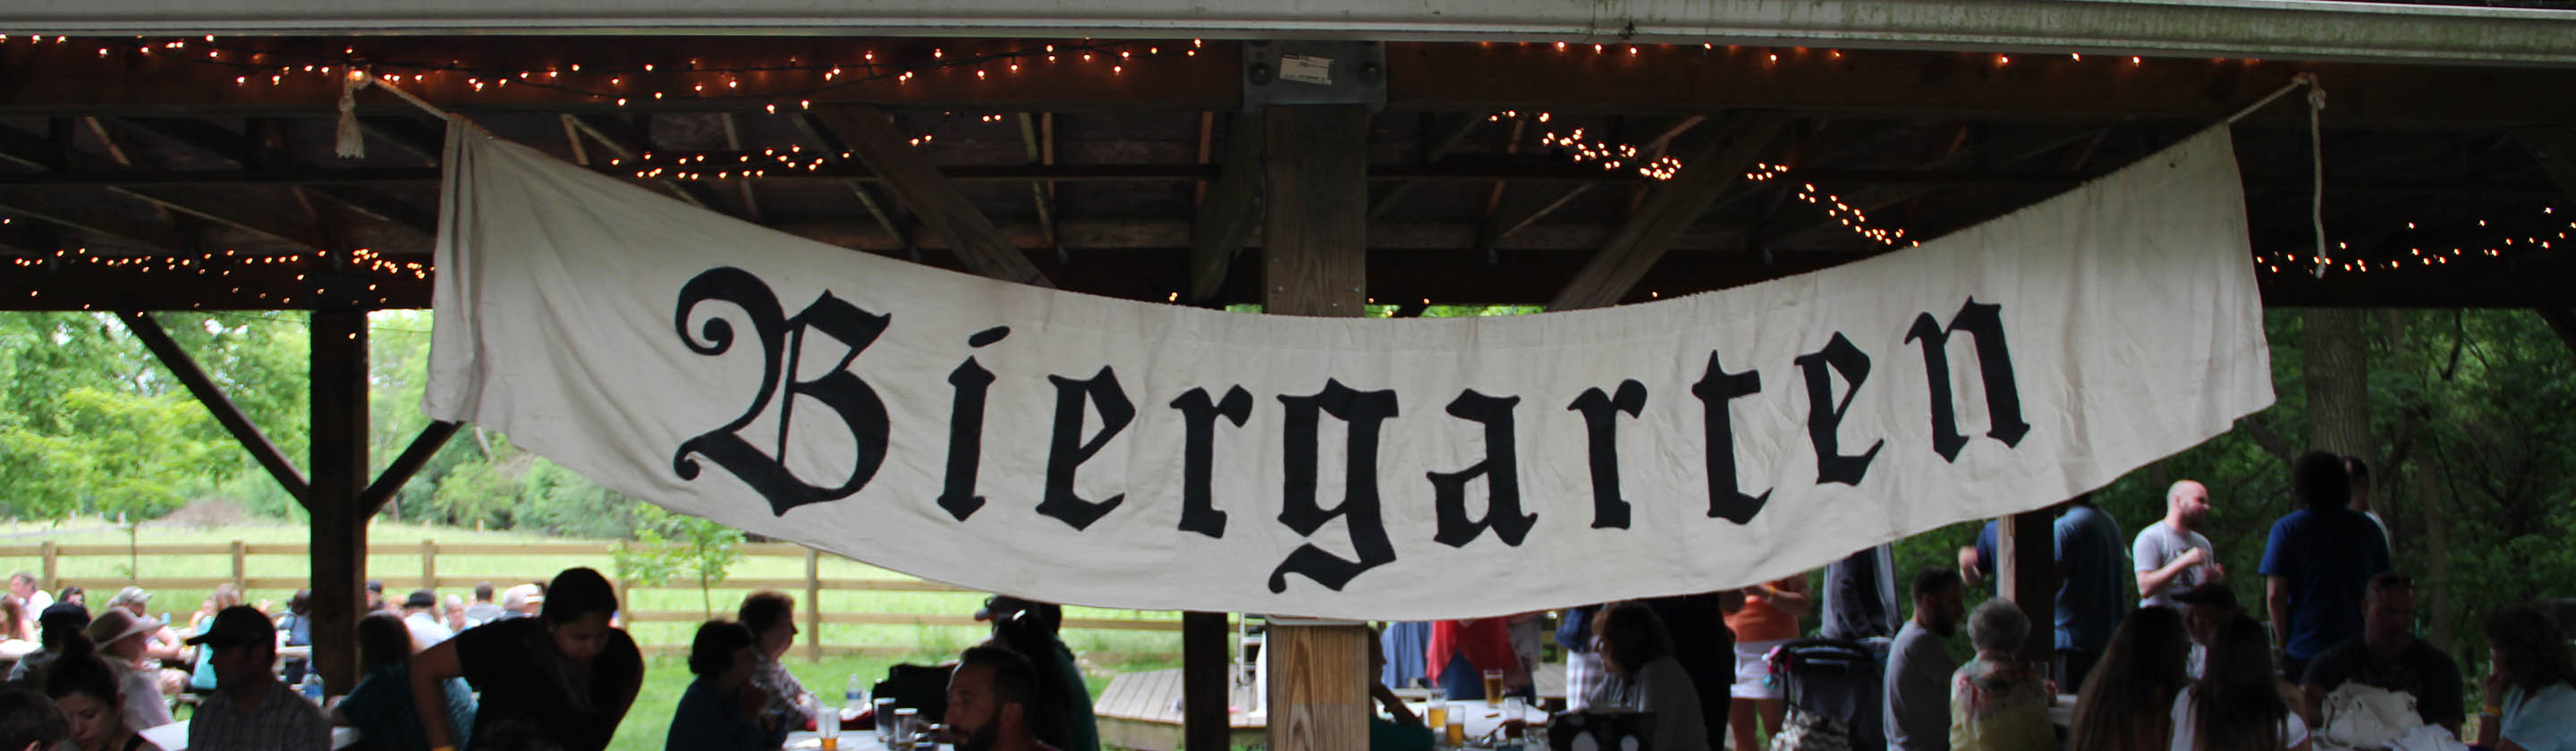 Kick-off to Oktoberfest is back at Heritage Farm!